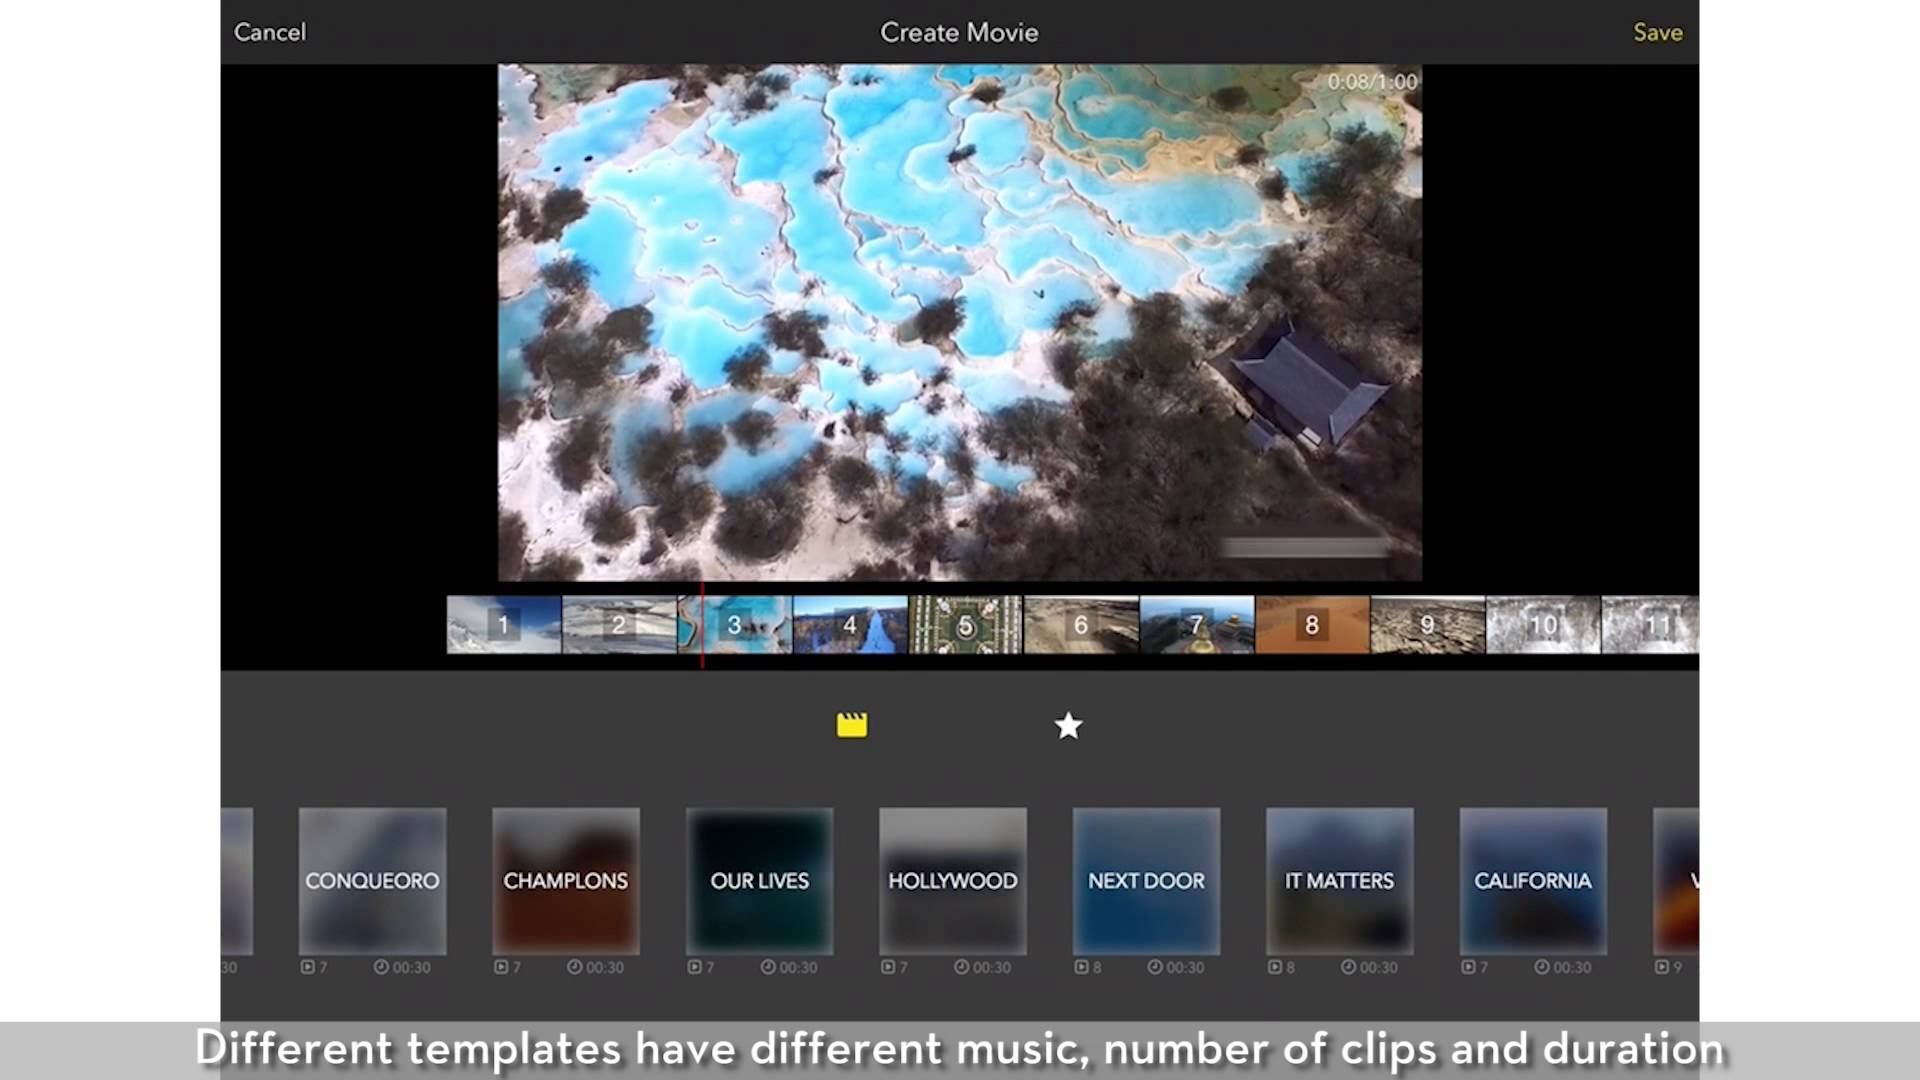 Dji Tutorial How To Edit And Share Videos Using The Dji Go App